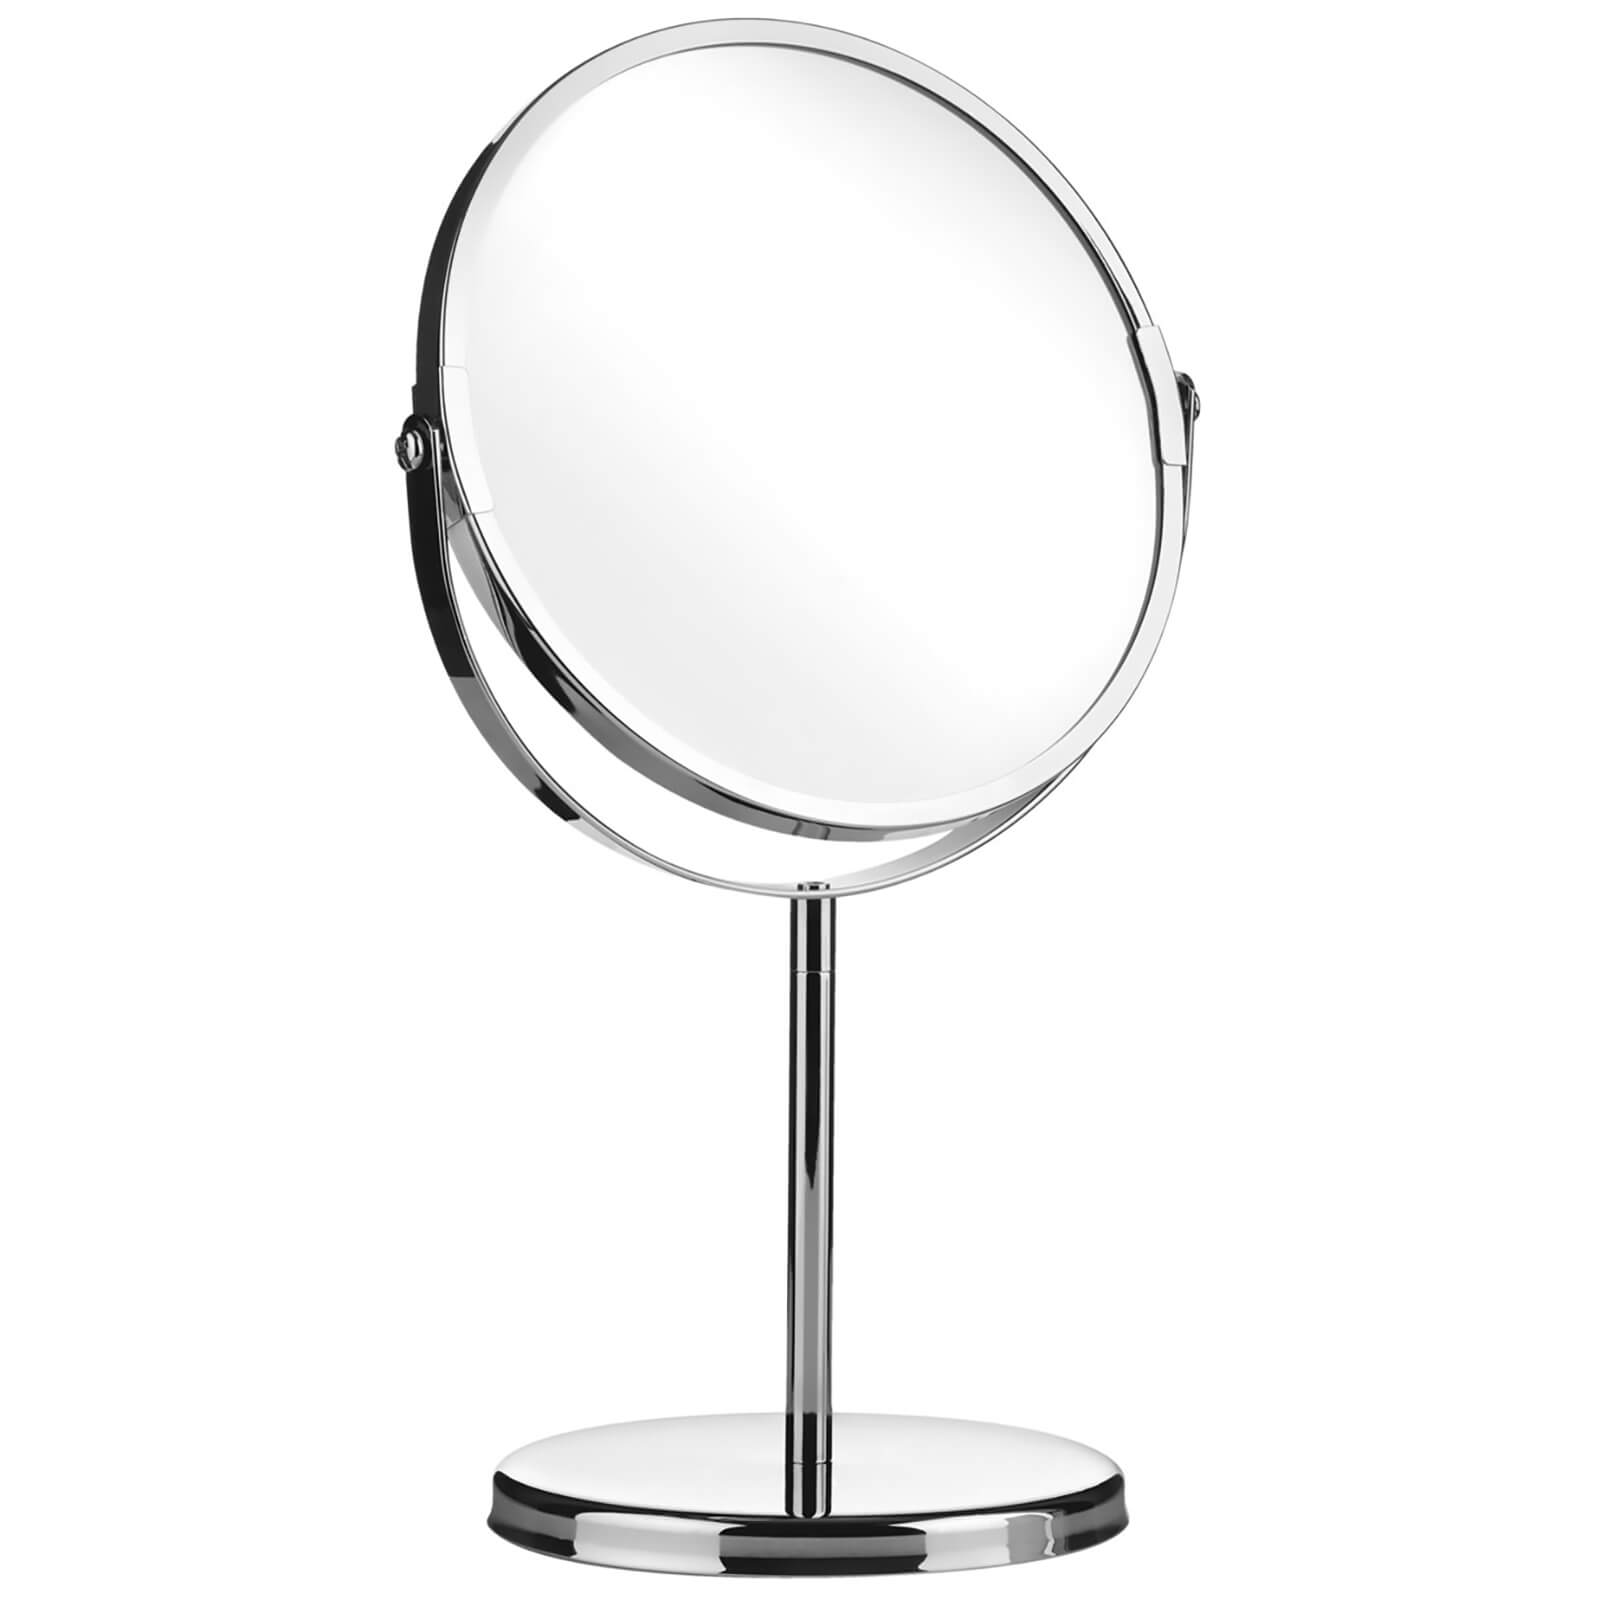 Premier Housewares Magnifying Swivel Mirror - Chrome